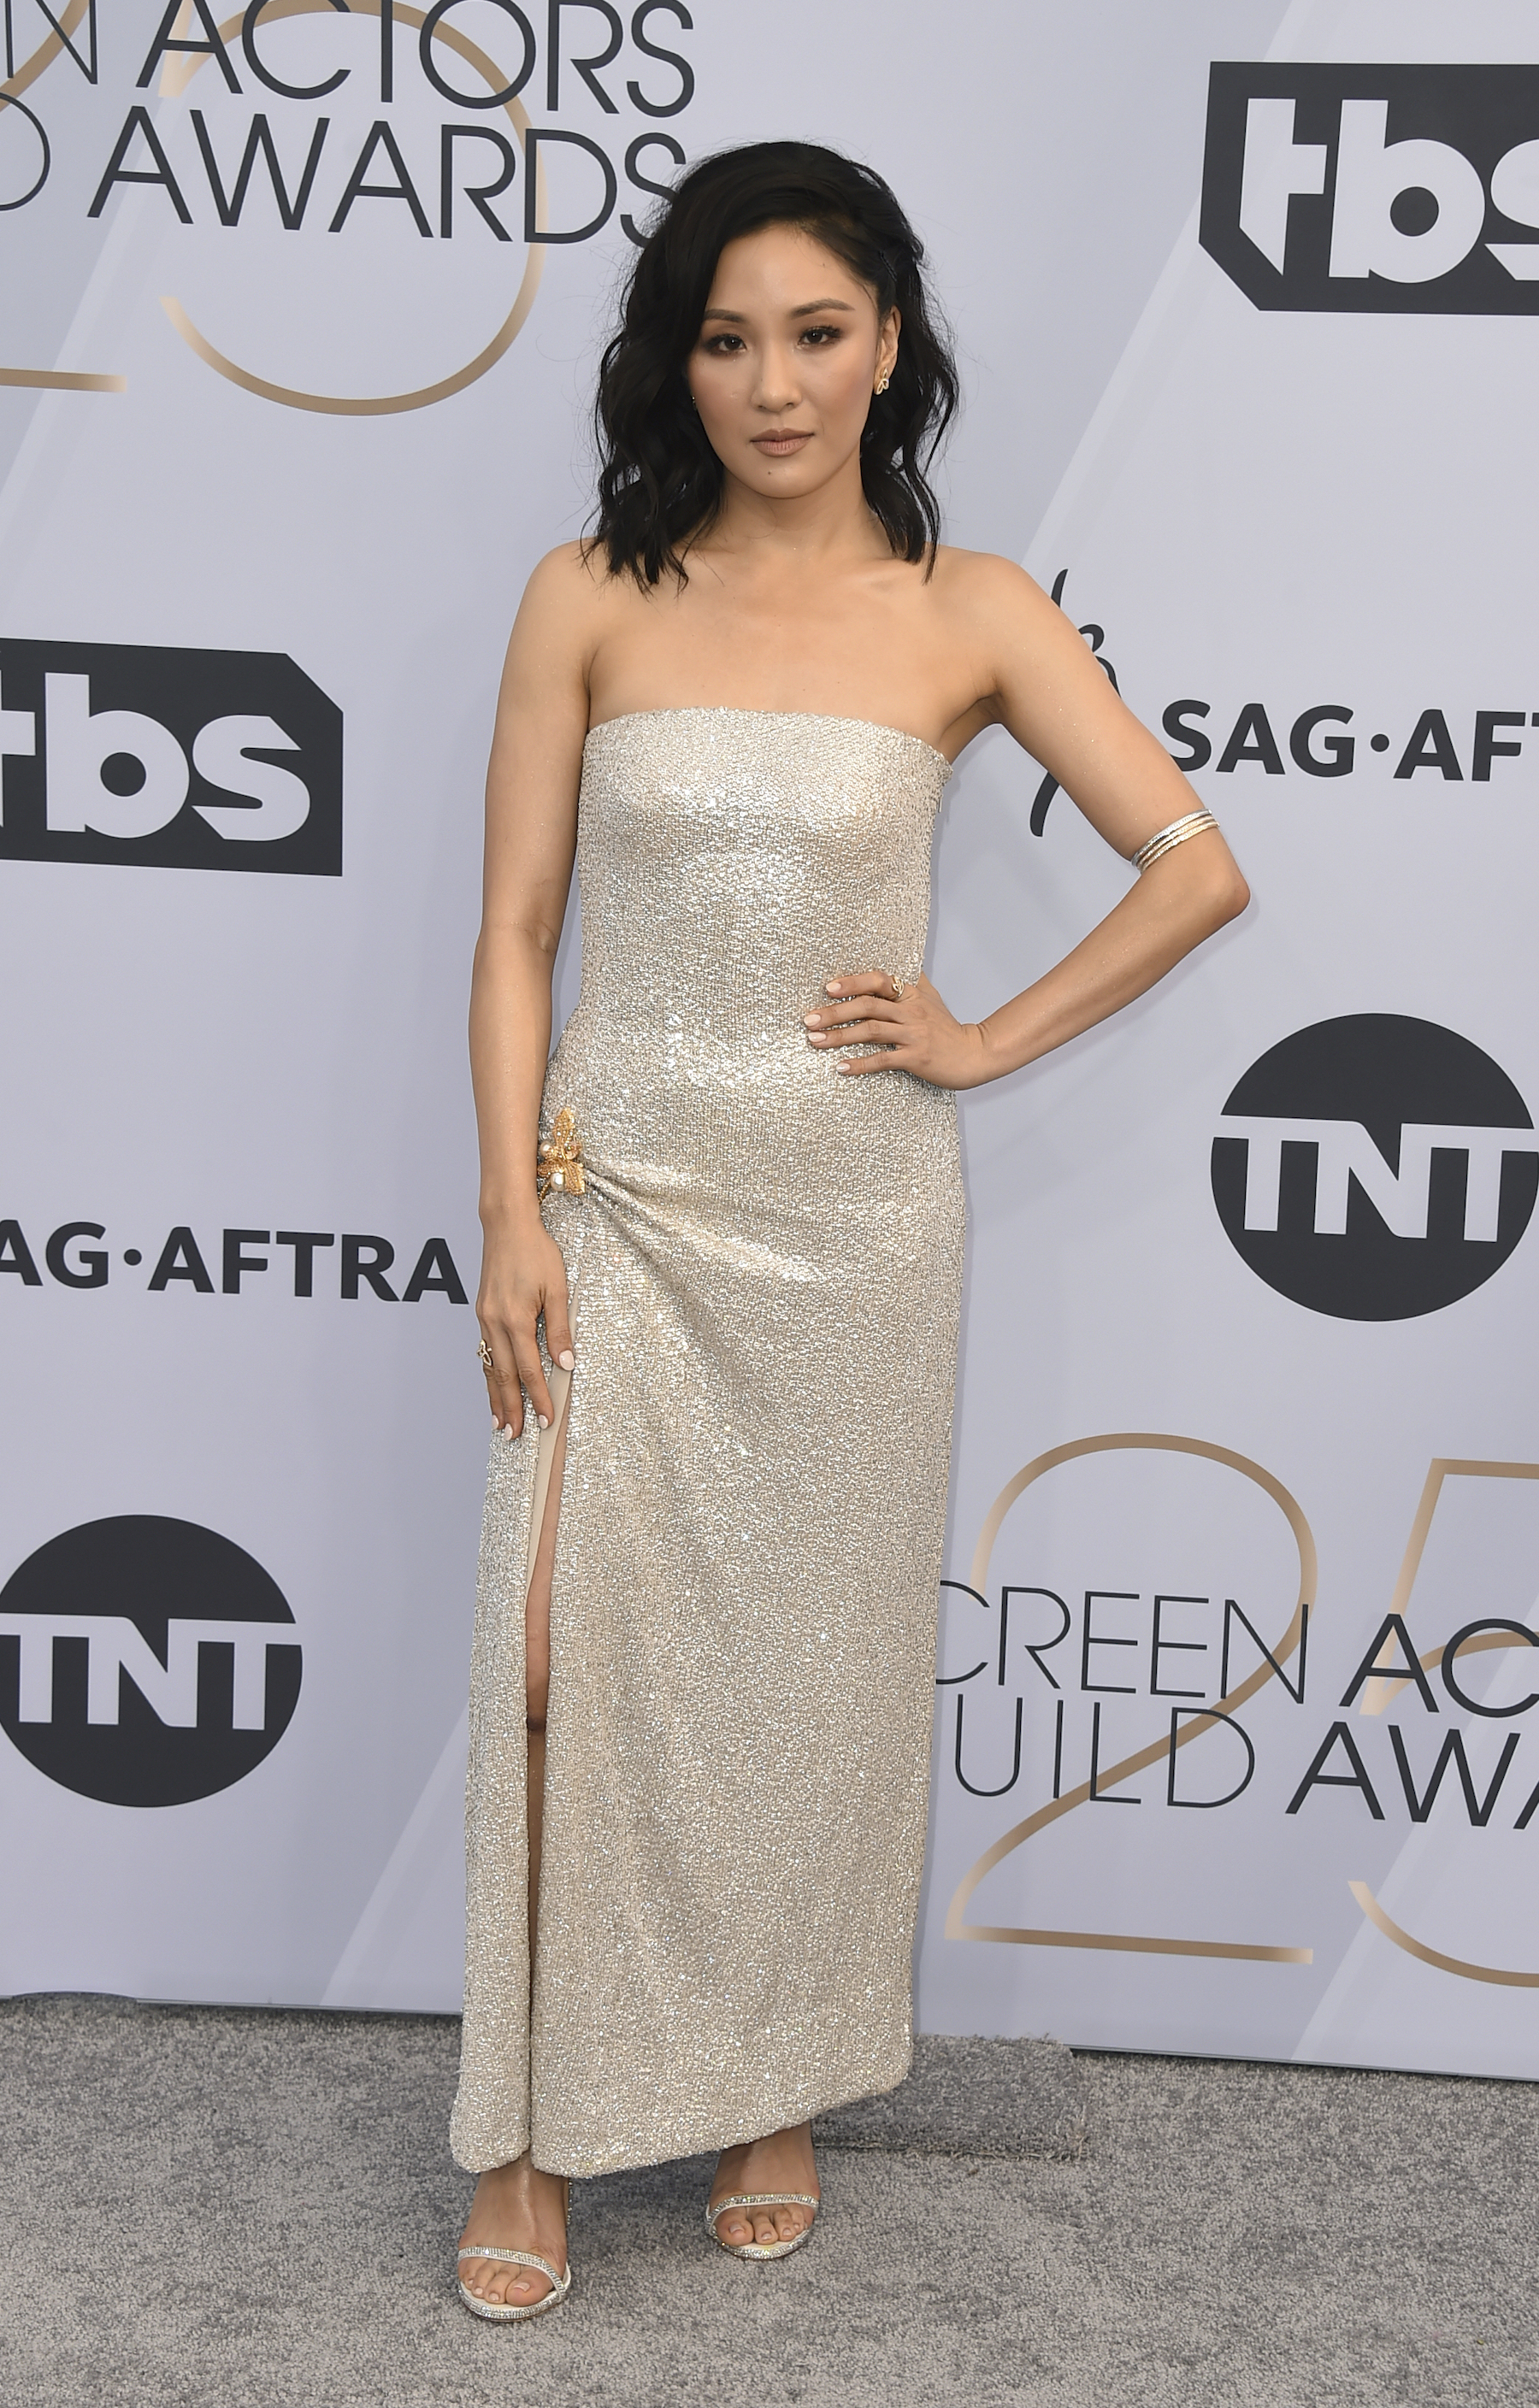 "<div class=""meta image-caption""><div class=""origin-logo origin-image ap""><span>AP</span></div><span class=""caption-text"">Constance Wu arrives at the 25th annual Screen Actors Guild Awards at the Shrine Auditorium & Expo Hall on Sunday, Jan. 27, 2019, in Los Angeles. (Jordan Strauss/Invision/AP)</span></div>"